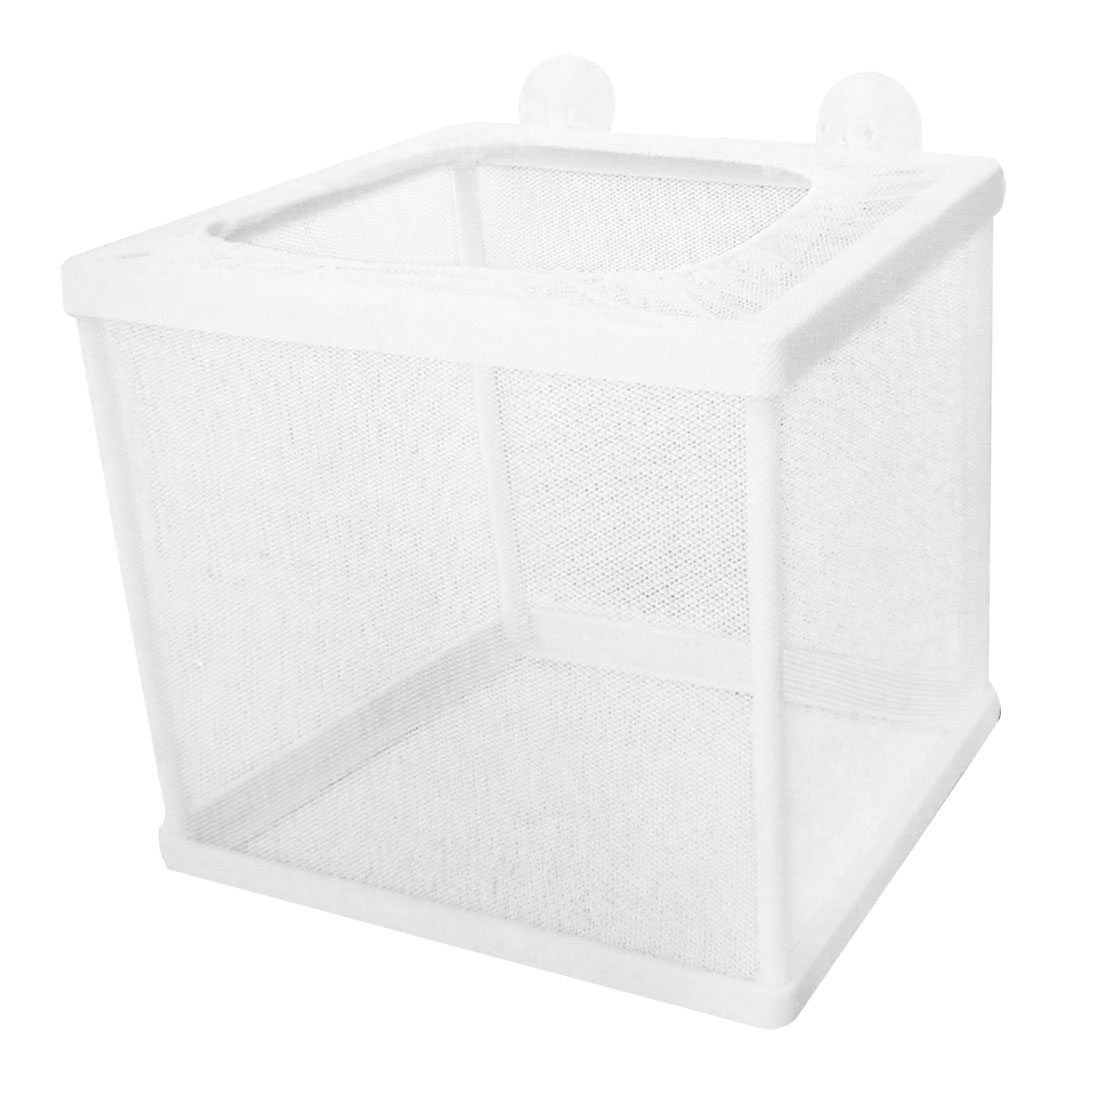 Fish Tank Aquarium Plastic Frame White Net Fry Hatchery Breeder